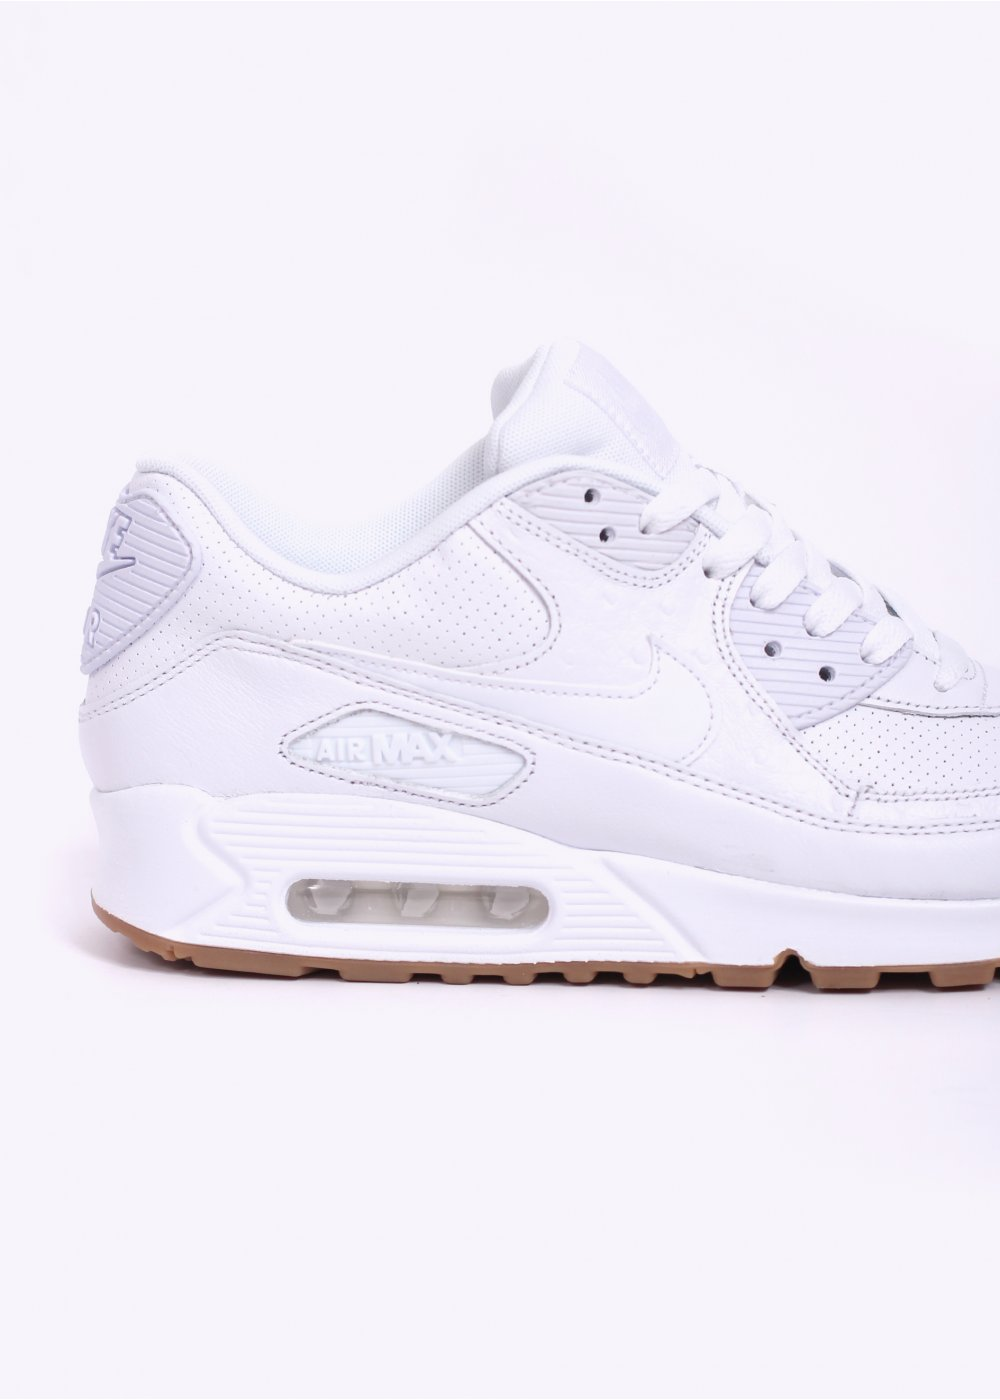 Nike AIR MAX 90 LEATHER PA 'Ostrich